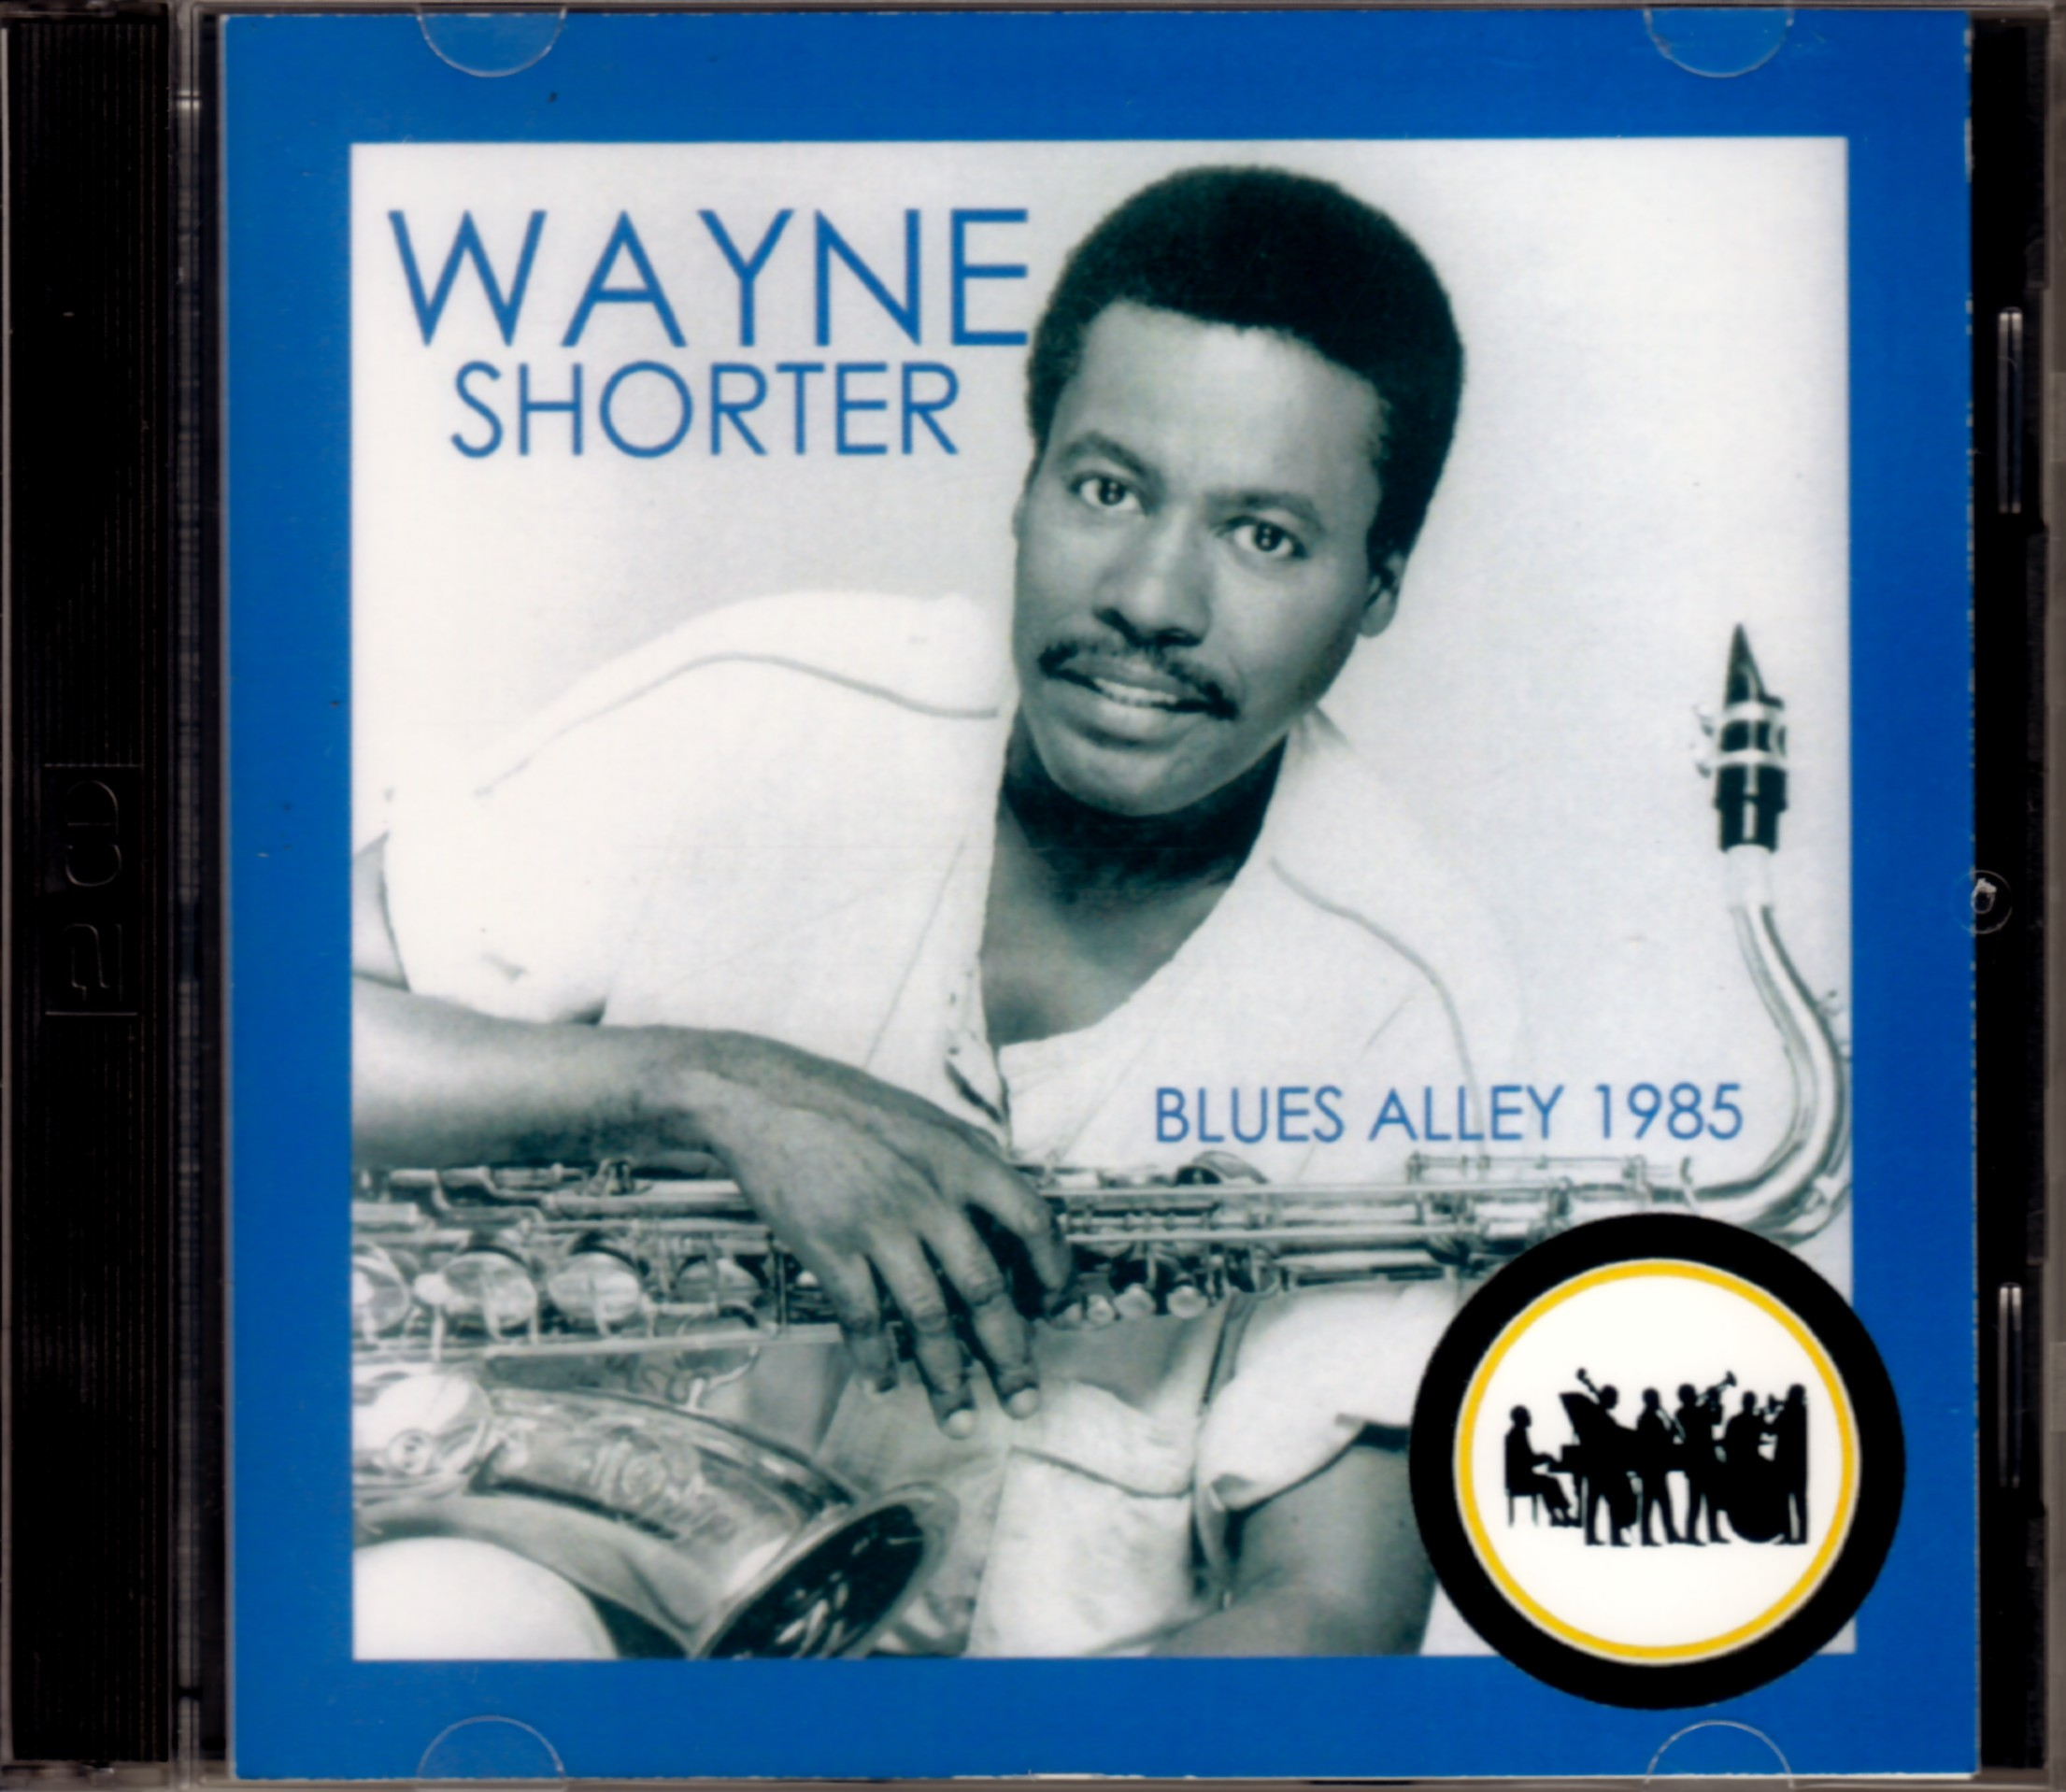 Wayne Shorter ウェイン・ショーター/Washington,USA 1985